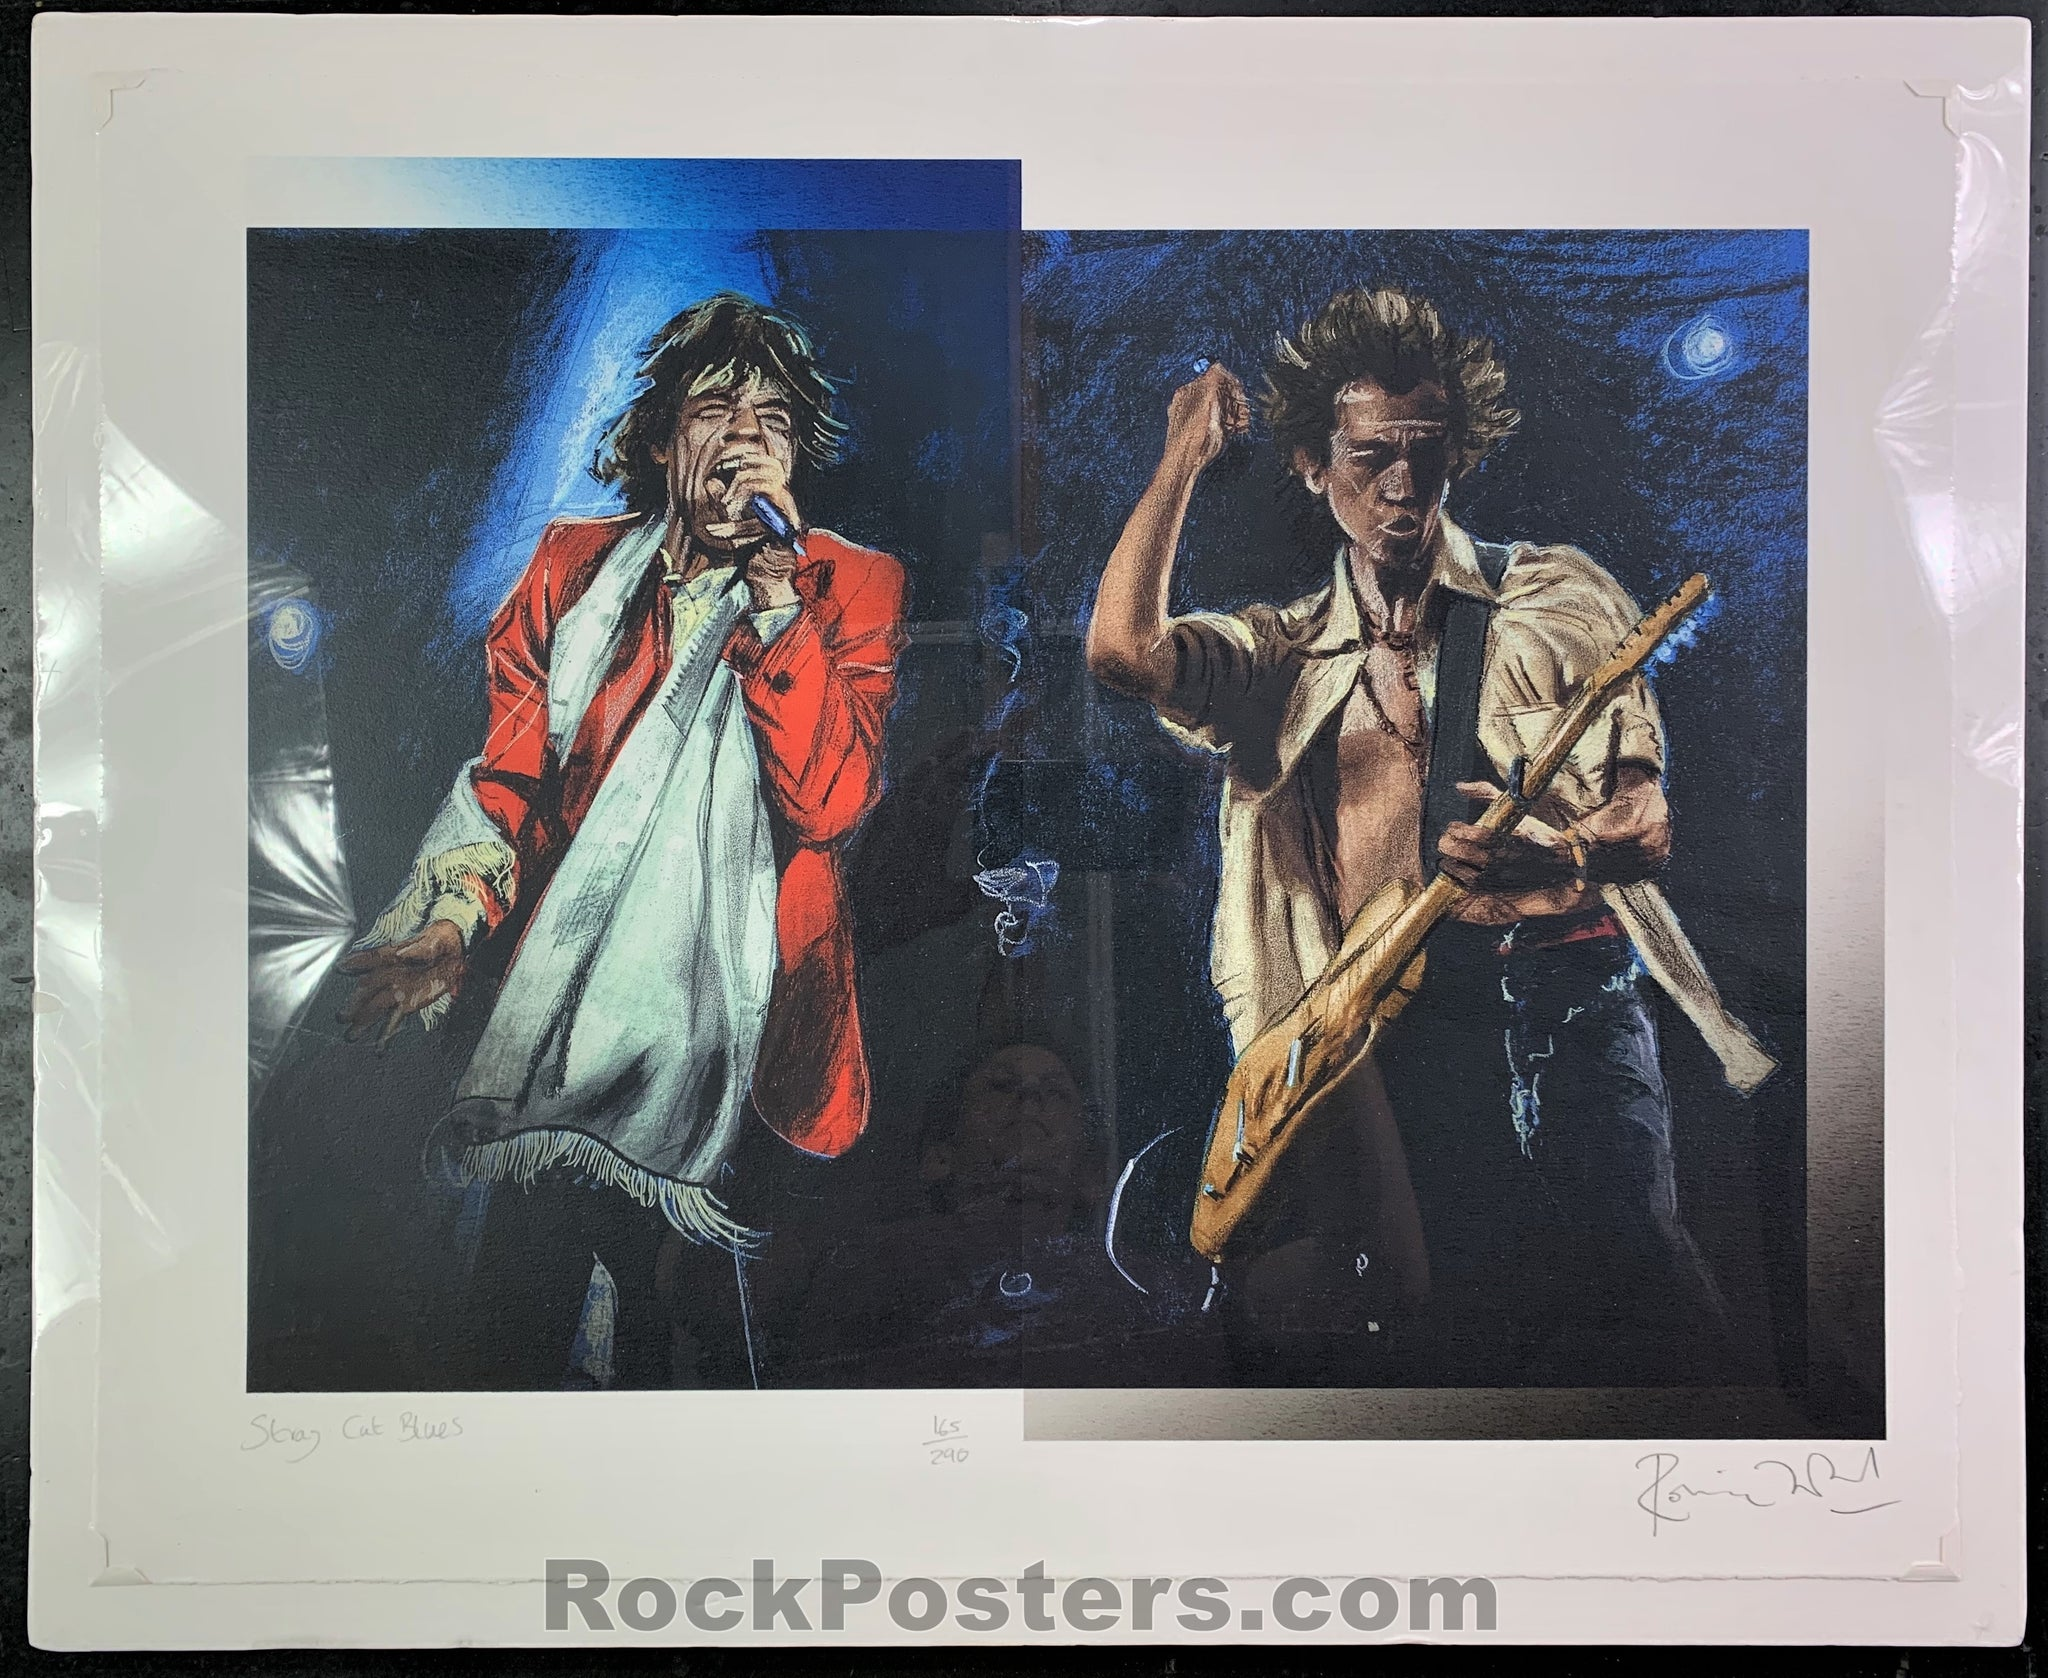 AUCTION - Rolling Stones  - Ron Wood Limited Signed Print - New York - Condition - Near Mint